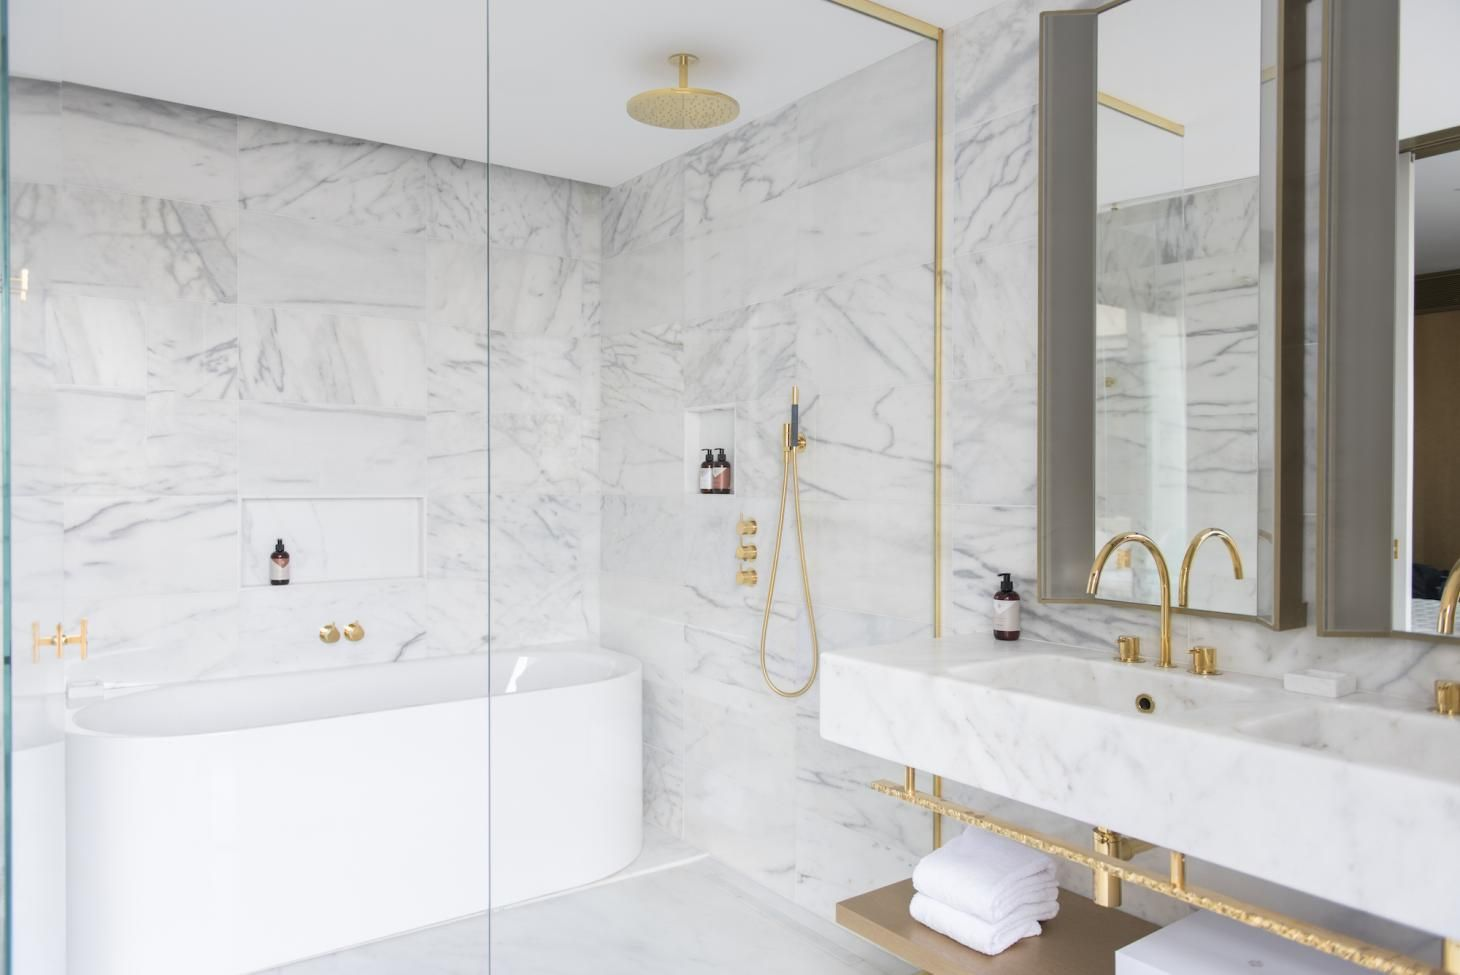 Hotel Sofitel Vienna The Bathroom Has A Relaxing Atmosphere And Neutral Colours The Glass Hotel Bathroom Design Bathroom Design Luxury Bathroom Decor Luxury